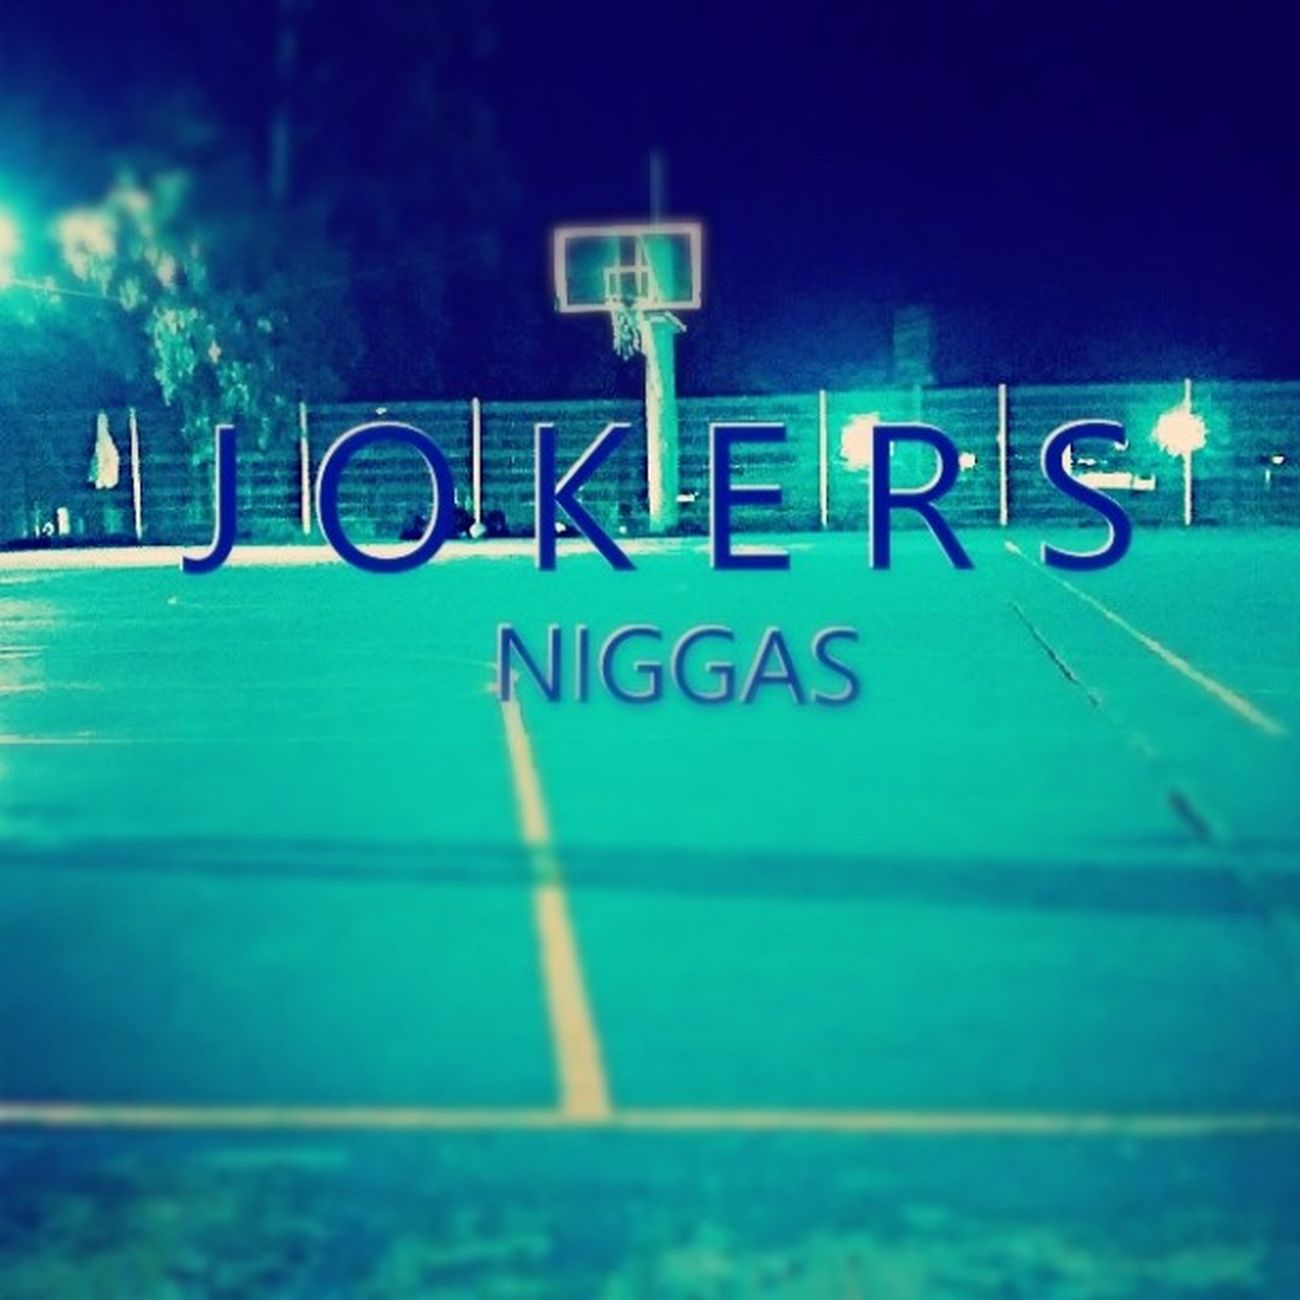 Play Basketball at night. Win in the last second. Just a Jokerexpirience . ???? PLAY HARD NIGGAS. Yolo Realballer Youngblood injury JOKERSWINS